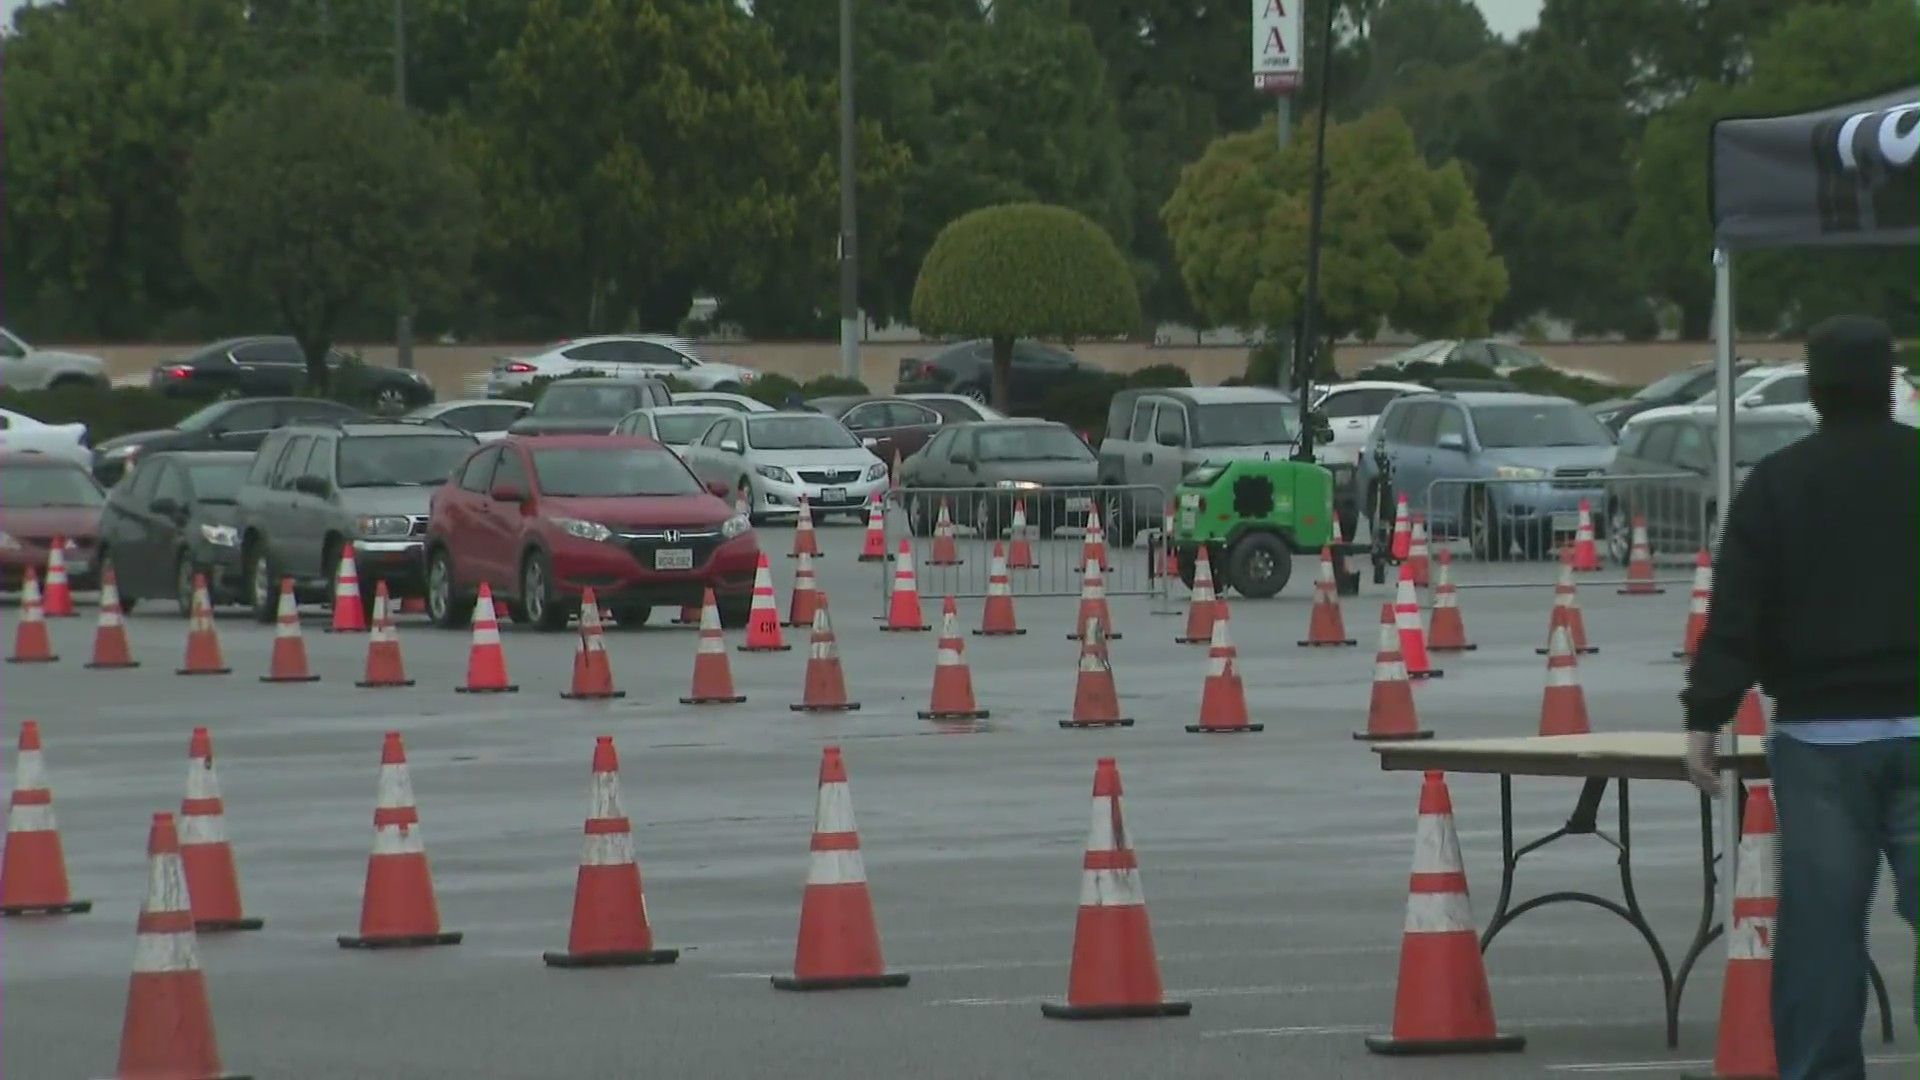 Hundreds of vehicles lined up outside the Forum in Inglewood for free groceries on April 10, 2010. (KTLA)